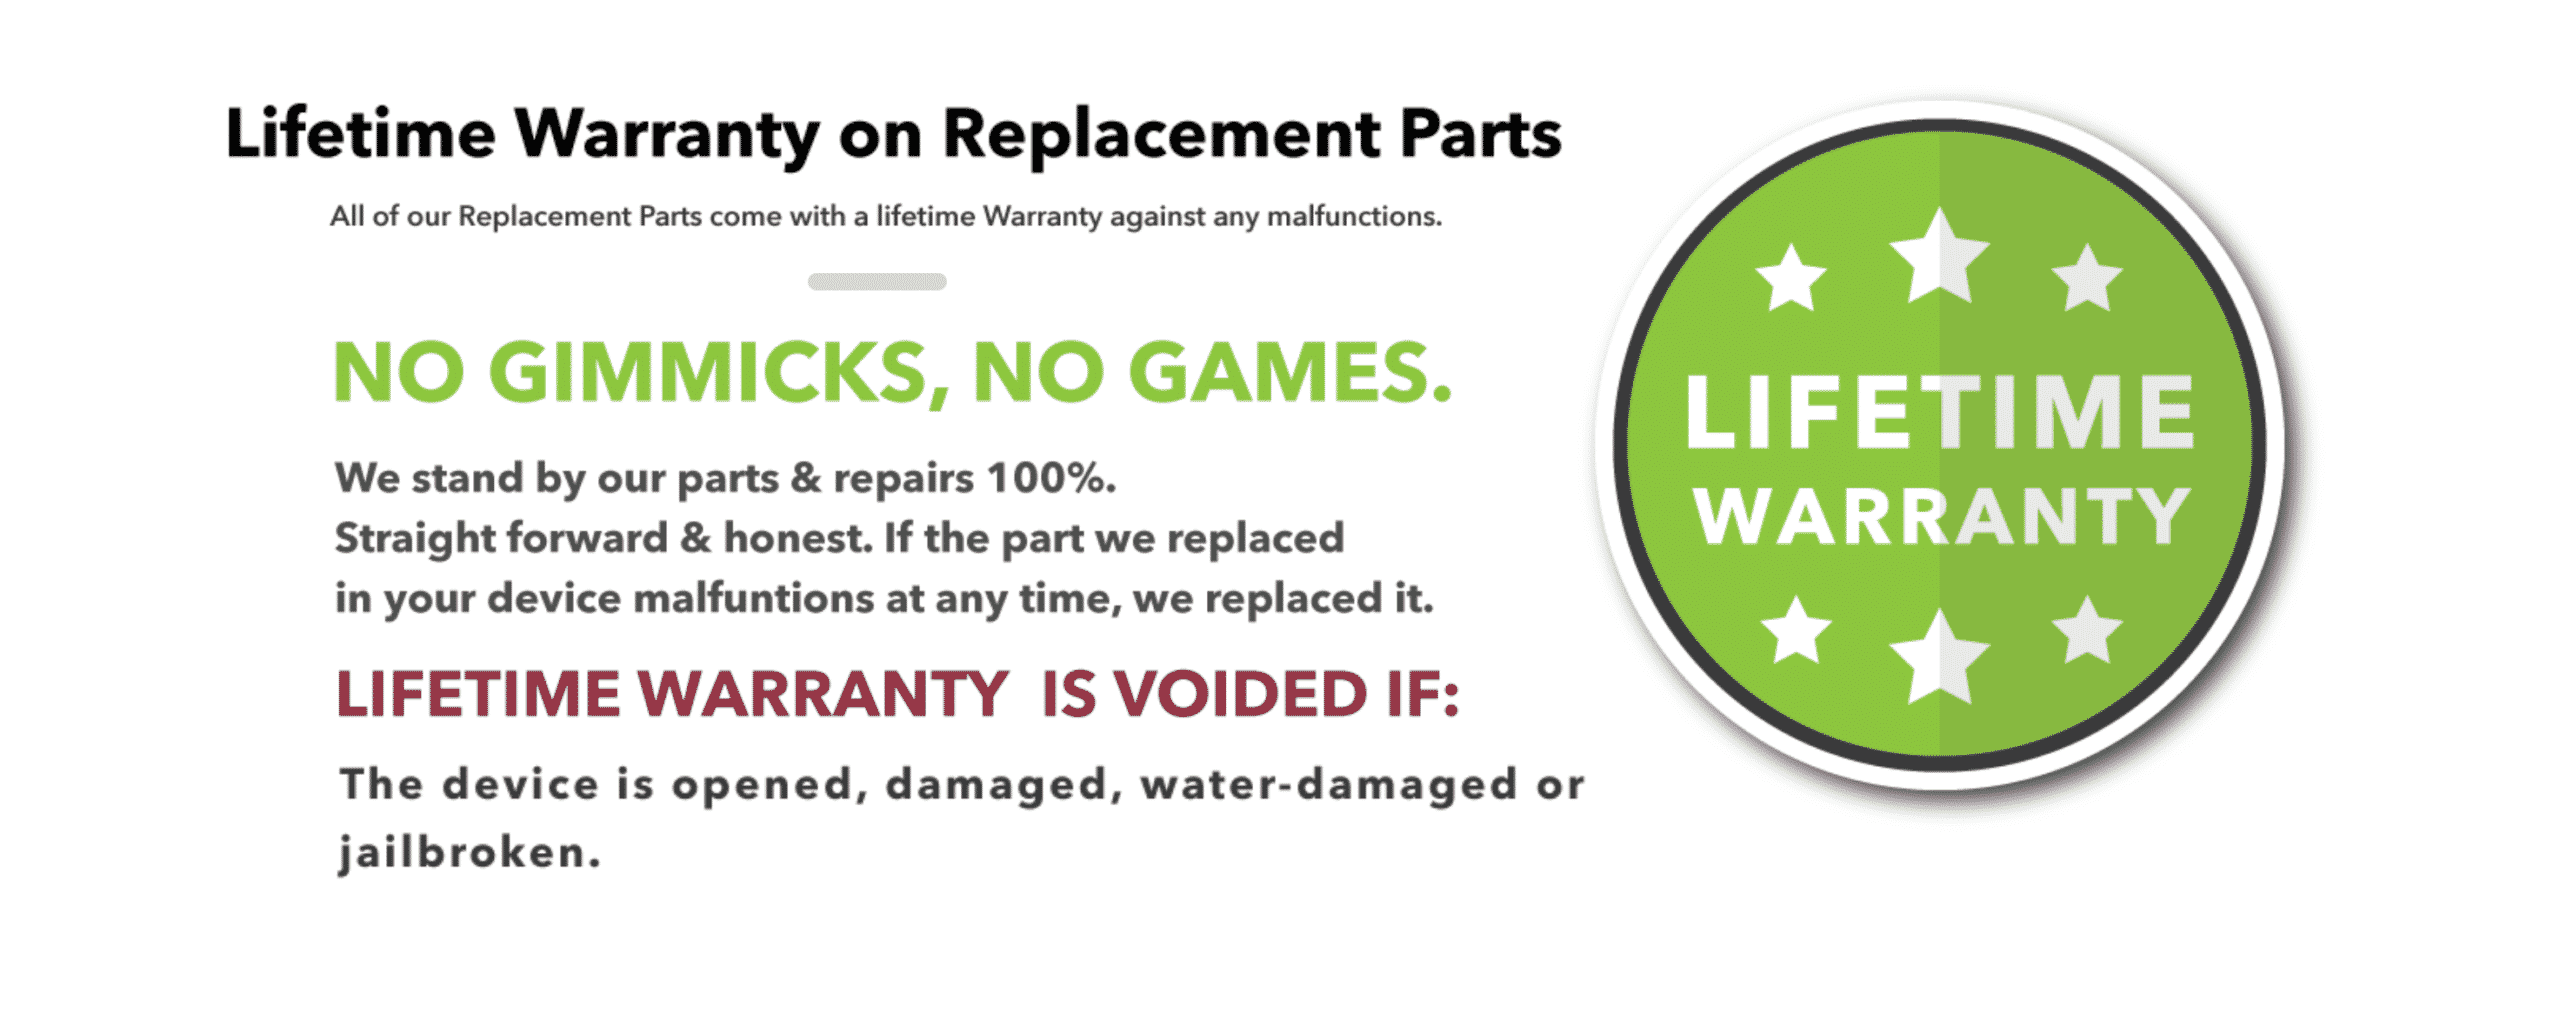 iMechanic - We Repair it All | Same Day Phone Repair & Lifetime Warranty